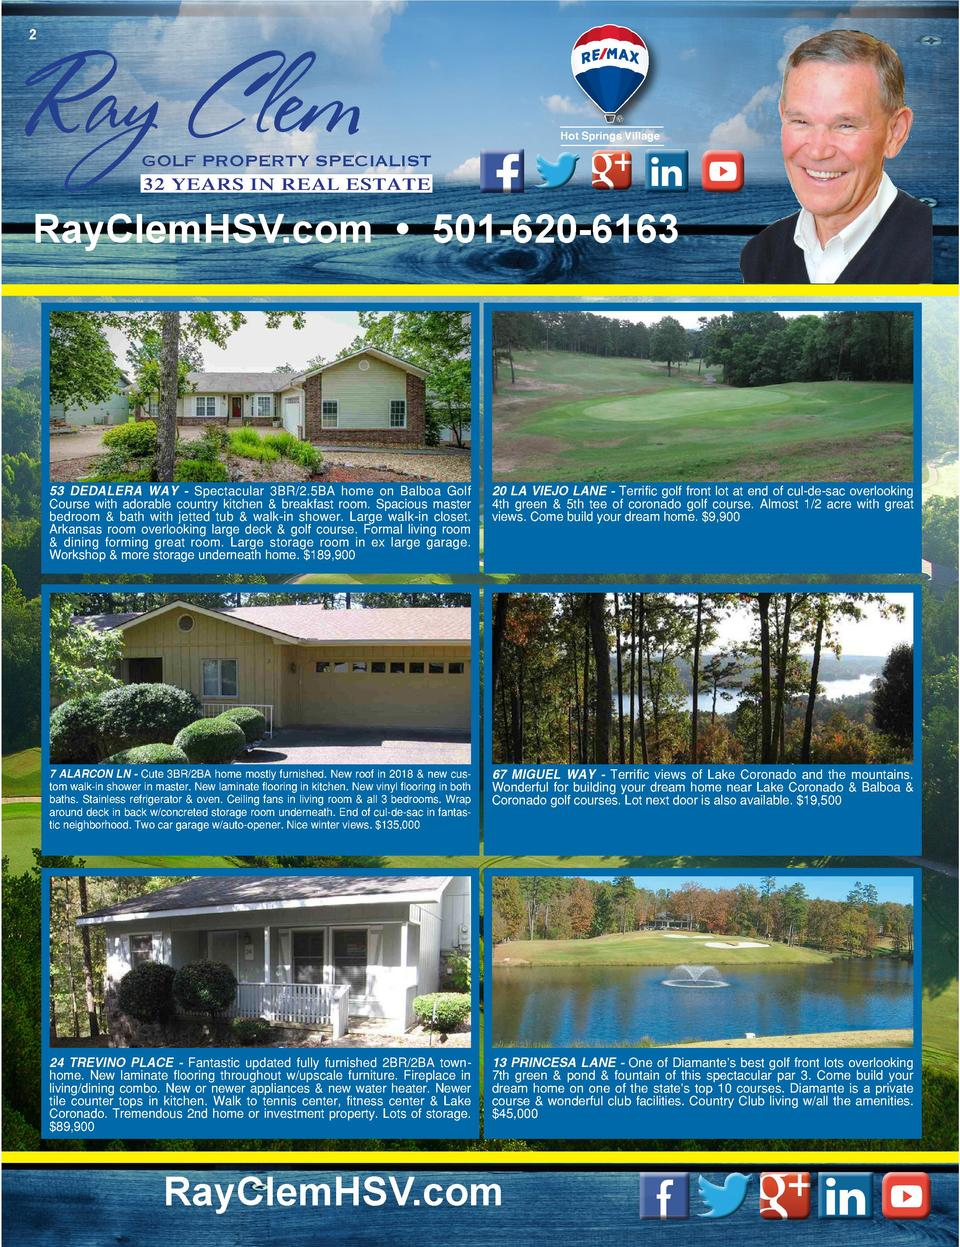 2  Ray Clem  Hot Springs Village  GOLF PROPERTY SPECIALIST 32 YEARS IN REAL ESTATE  RayClemHSV.com     501-620-6163  53 DE...